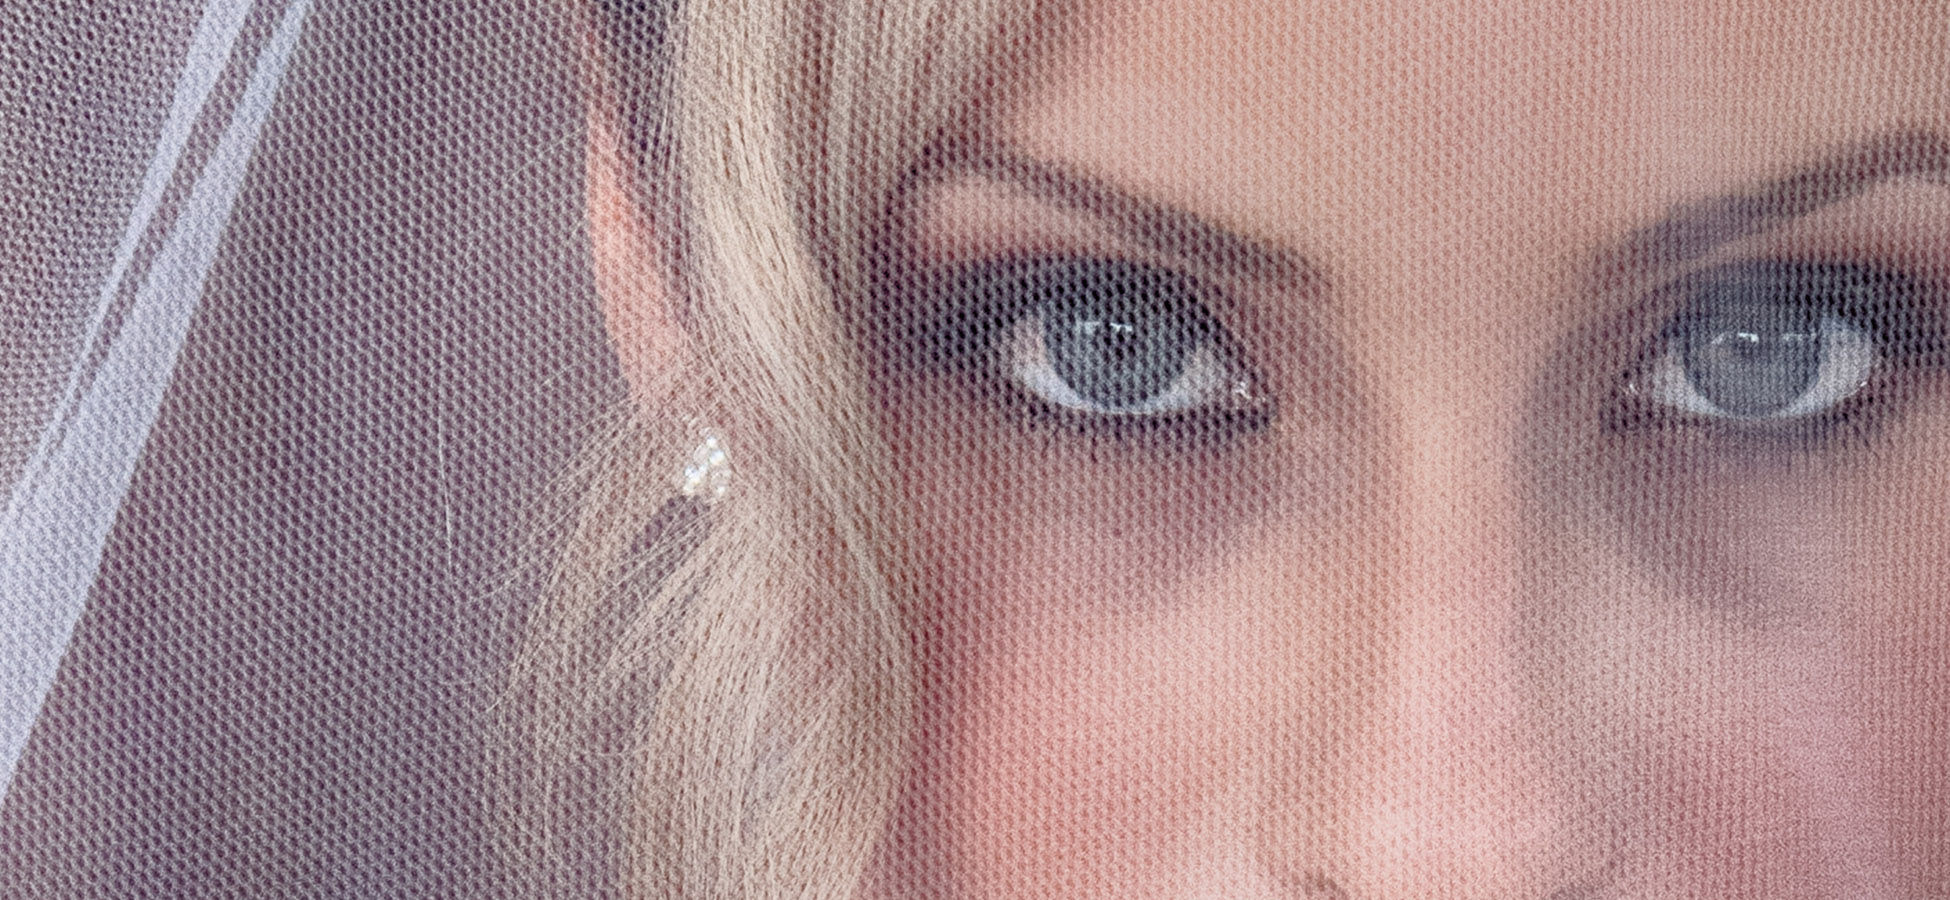 Sydney-Wedding-Video-&-Photography-of-a-beautiful-Sydney-bride-close-up-with-blue-eyes-gaze-from-under-her-veil